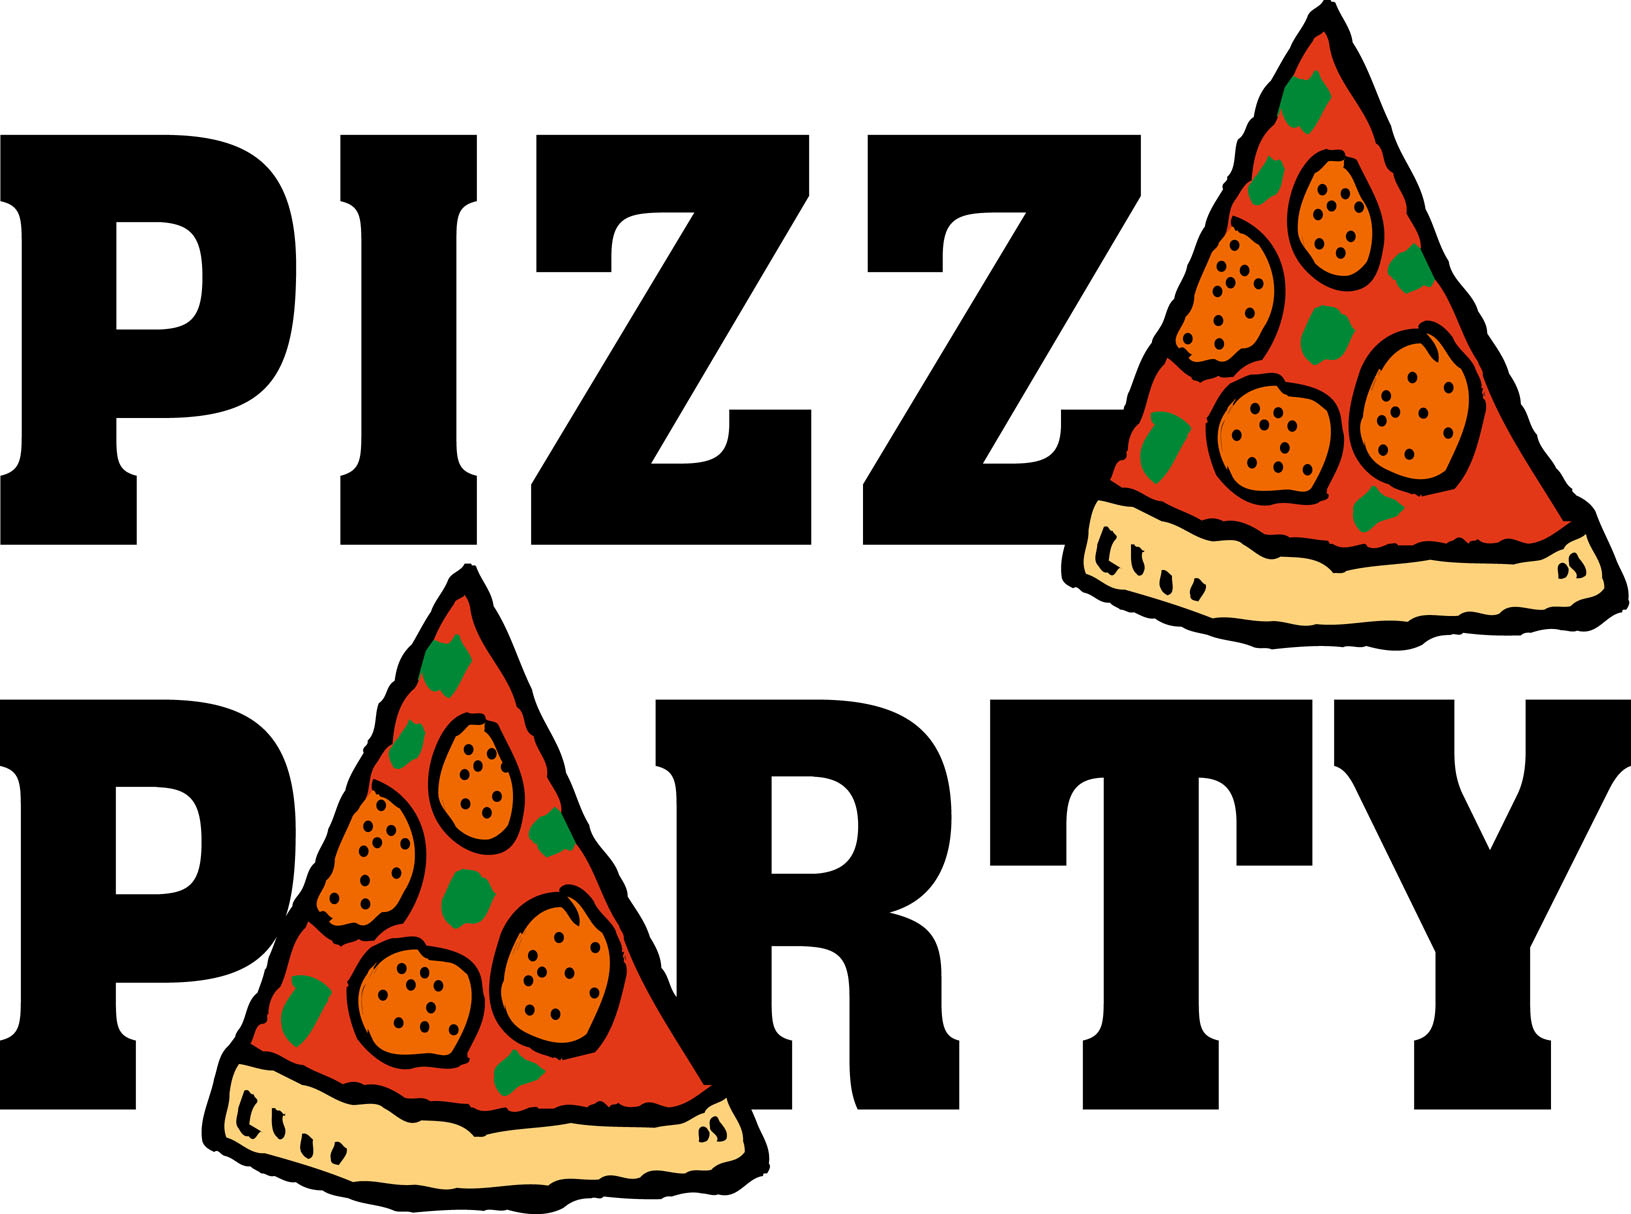 pizza-party-clipart-PizzaParty